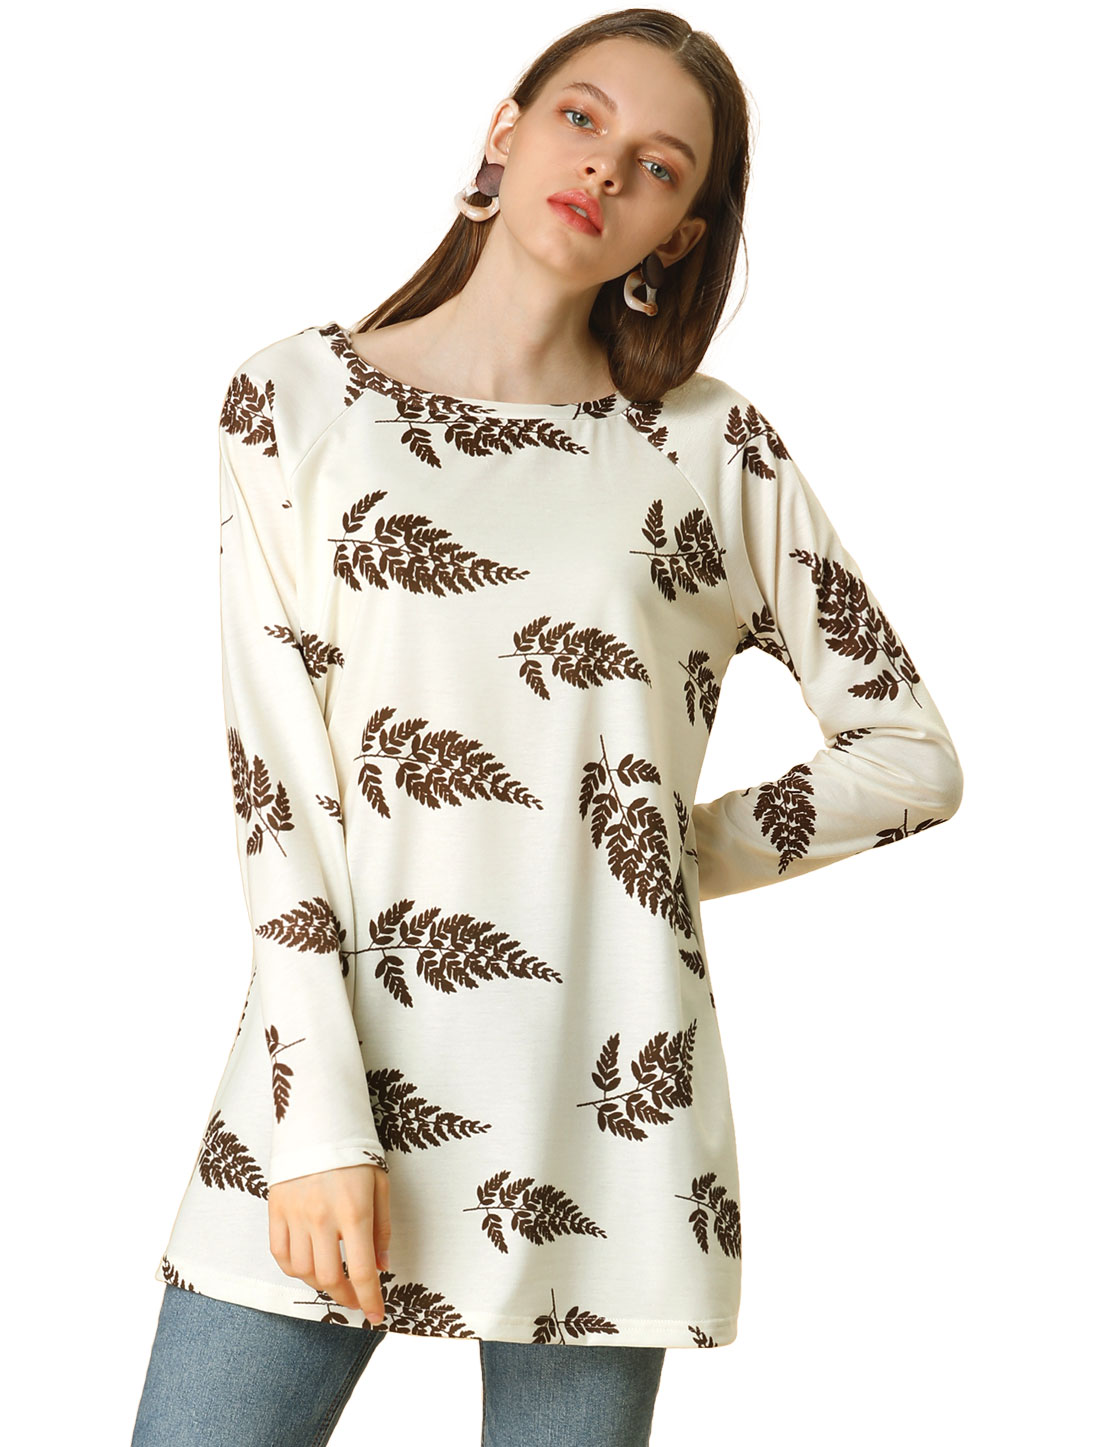 Allegra K Women's Leaf Print Raglan Loose Tunic Top Crem White S (US 6)